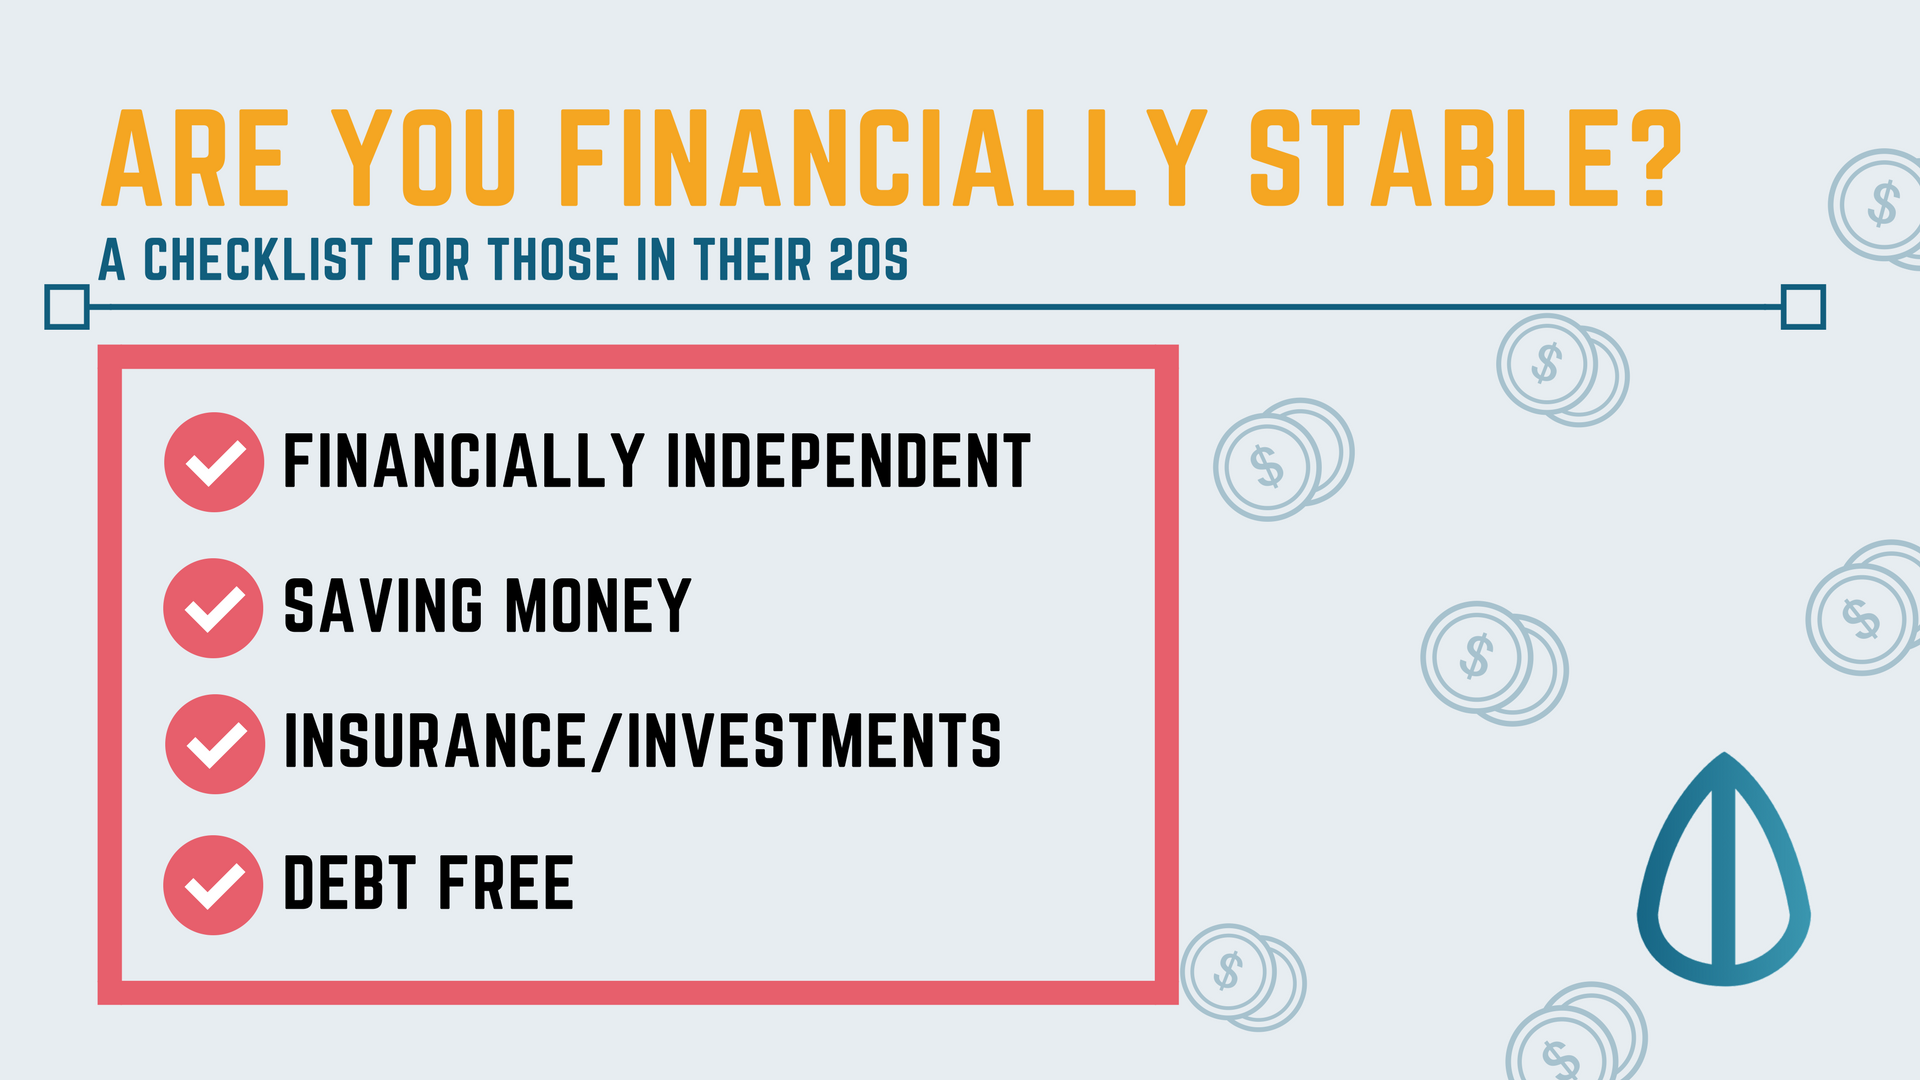 Checklist for financial stability